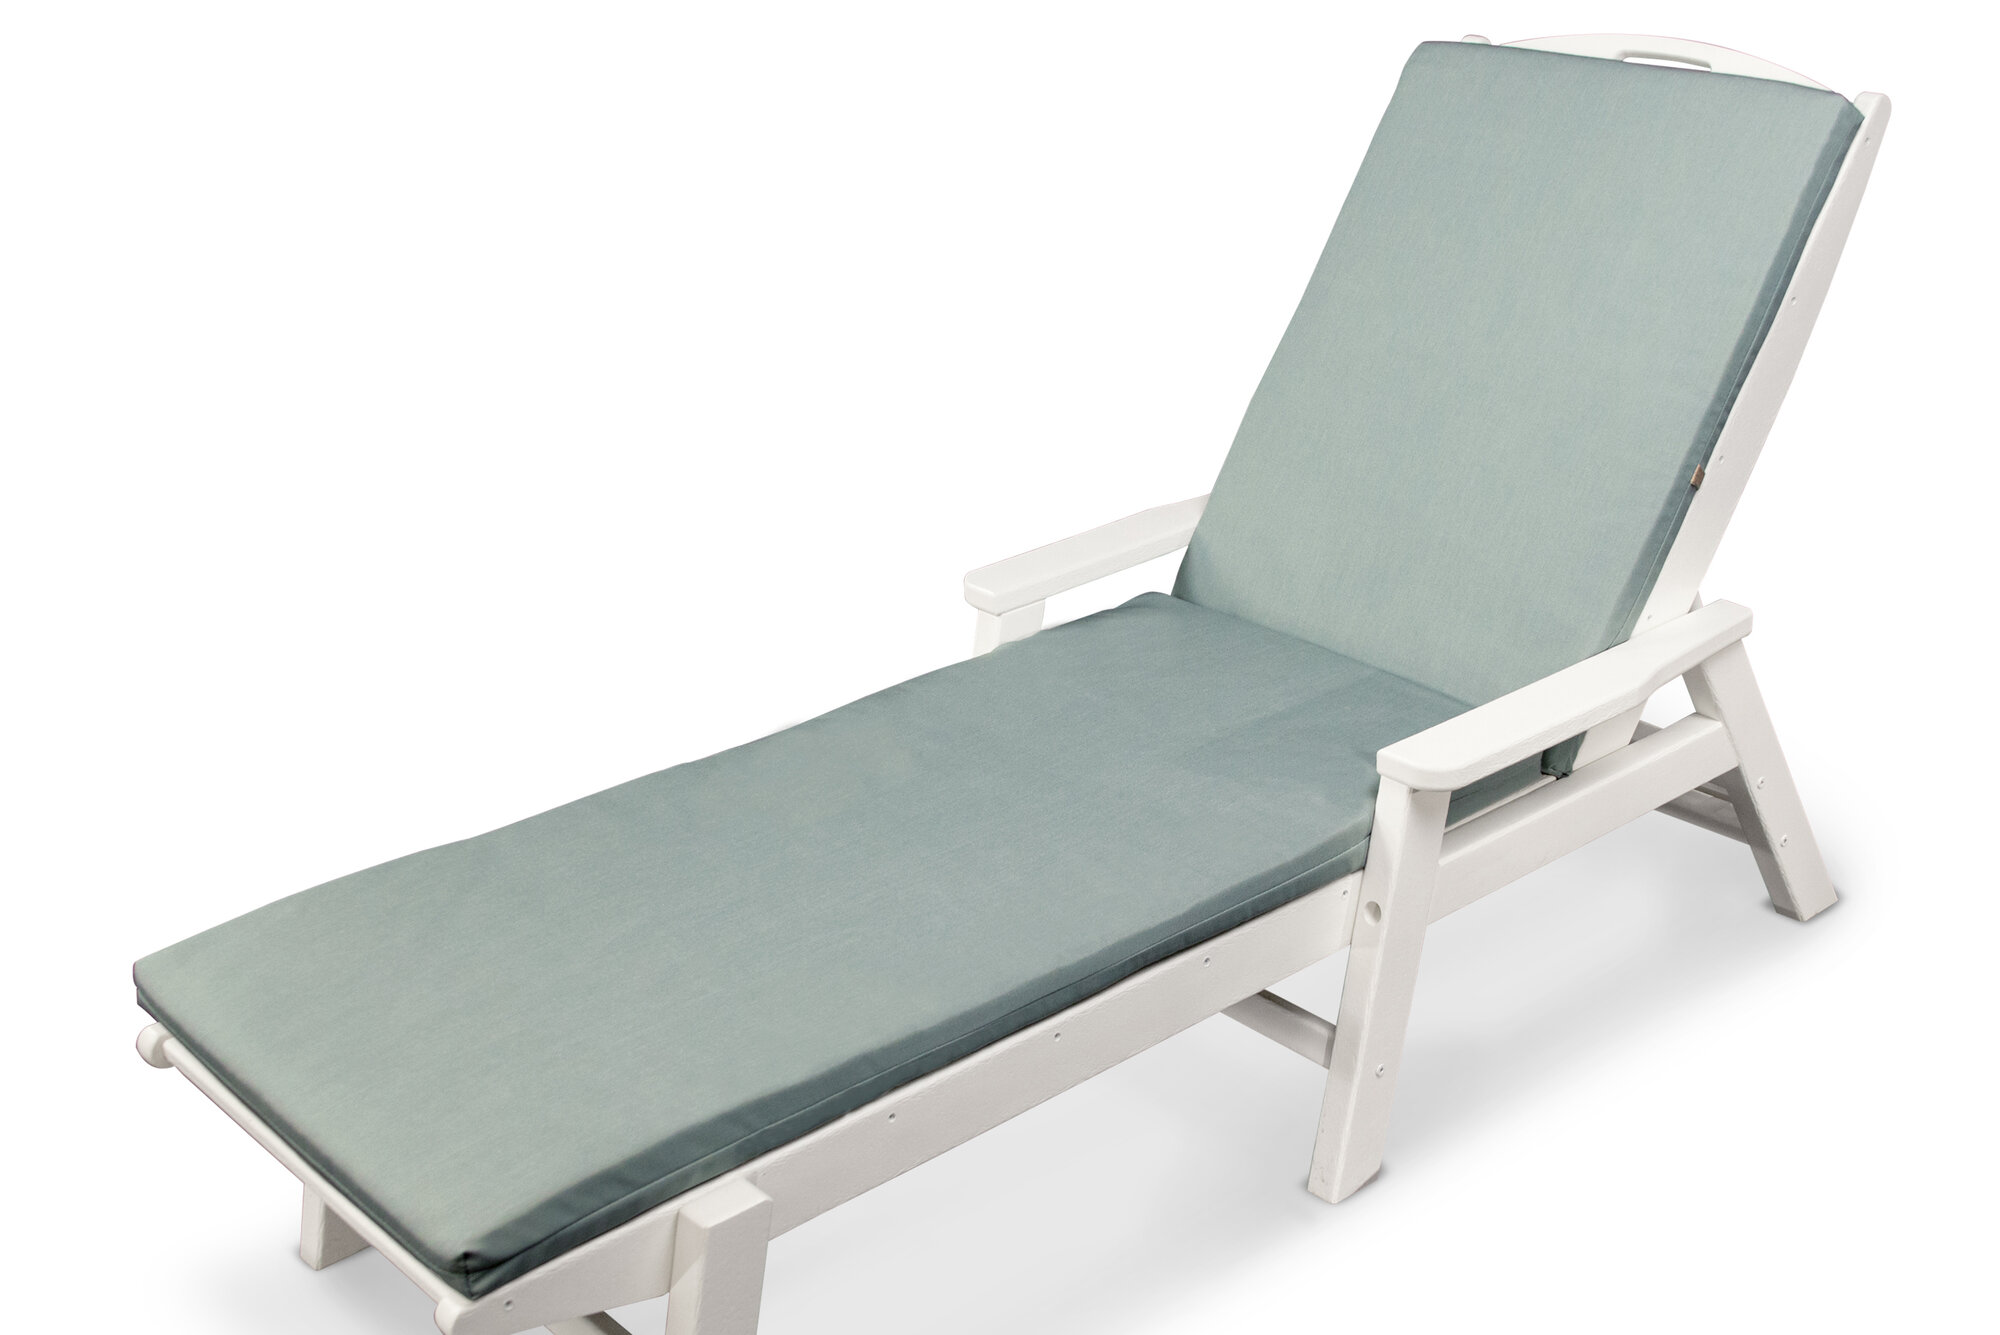 Ateeva outdoor sunbrella chaise lounge cushion ebay for Chaise lounge cushion outdoor